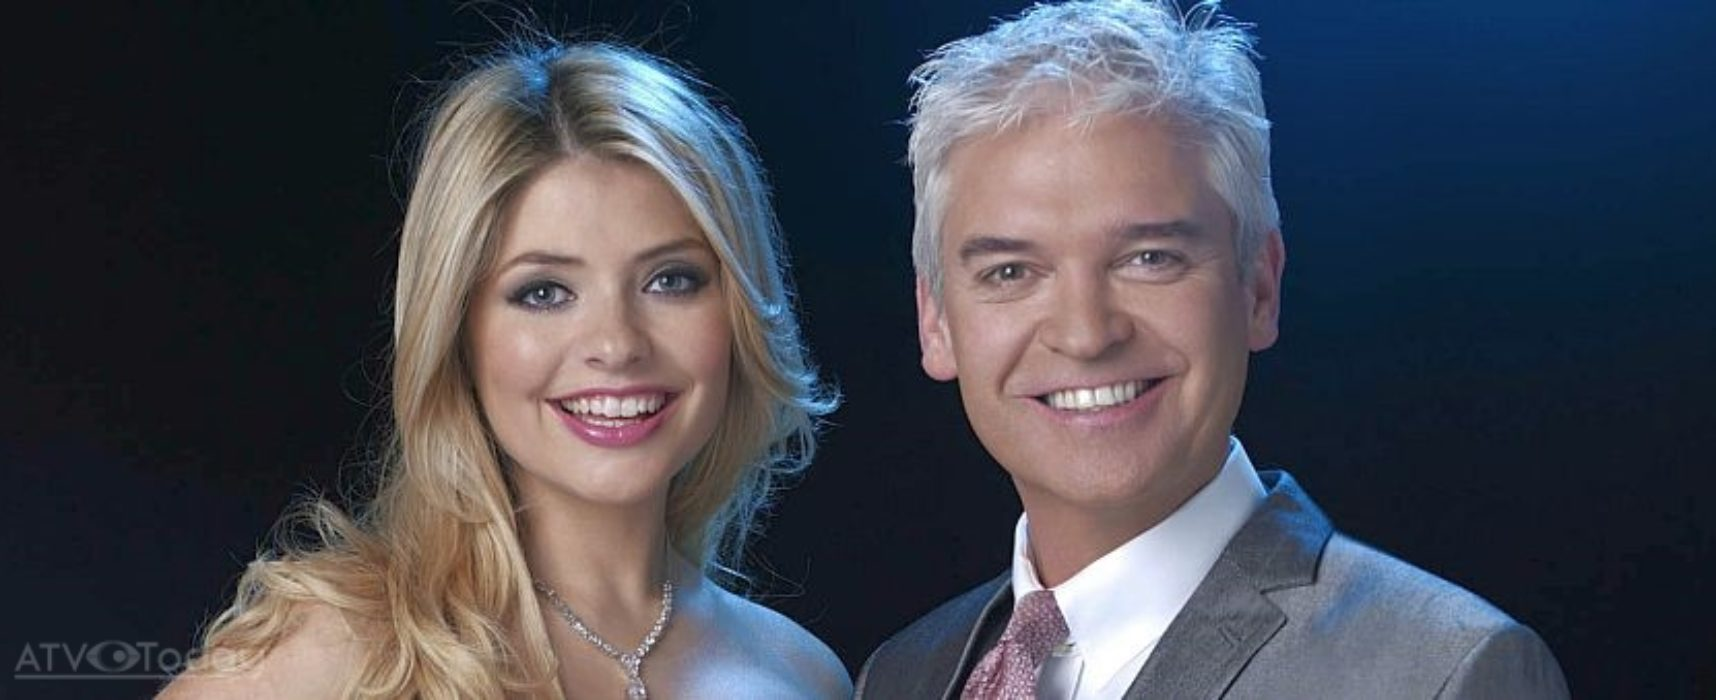 Dancing on Ice to return to ITV in 2018